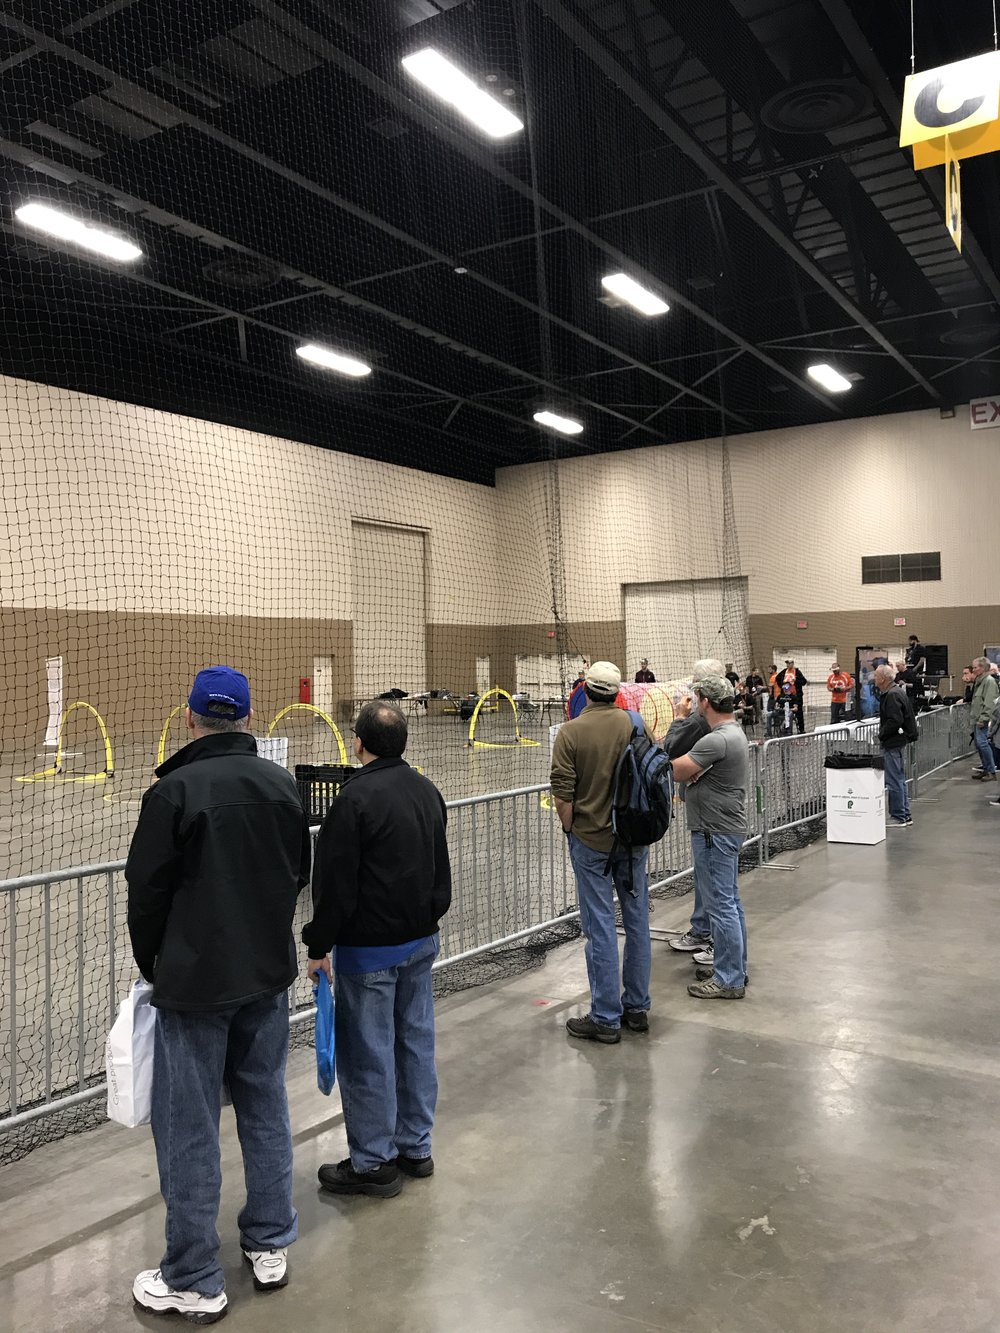 The Drone Racing Area didn't attract many people.